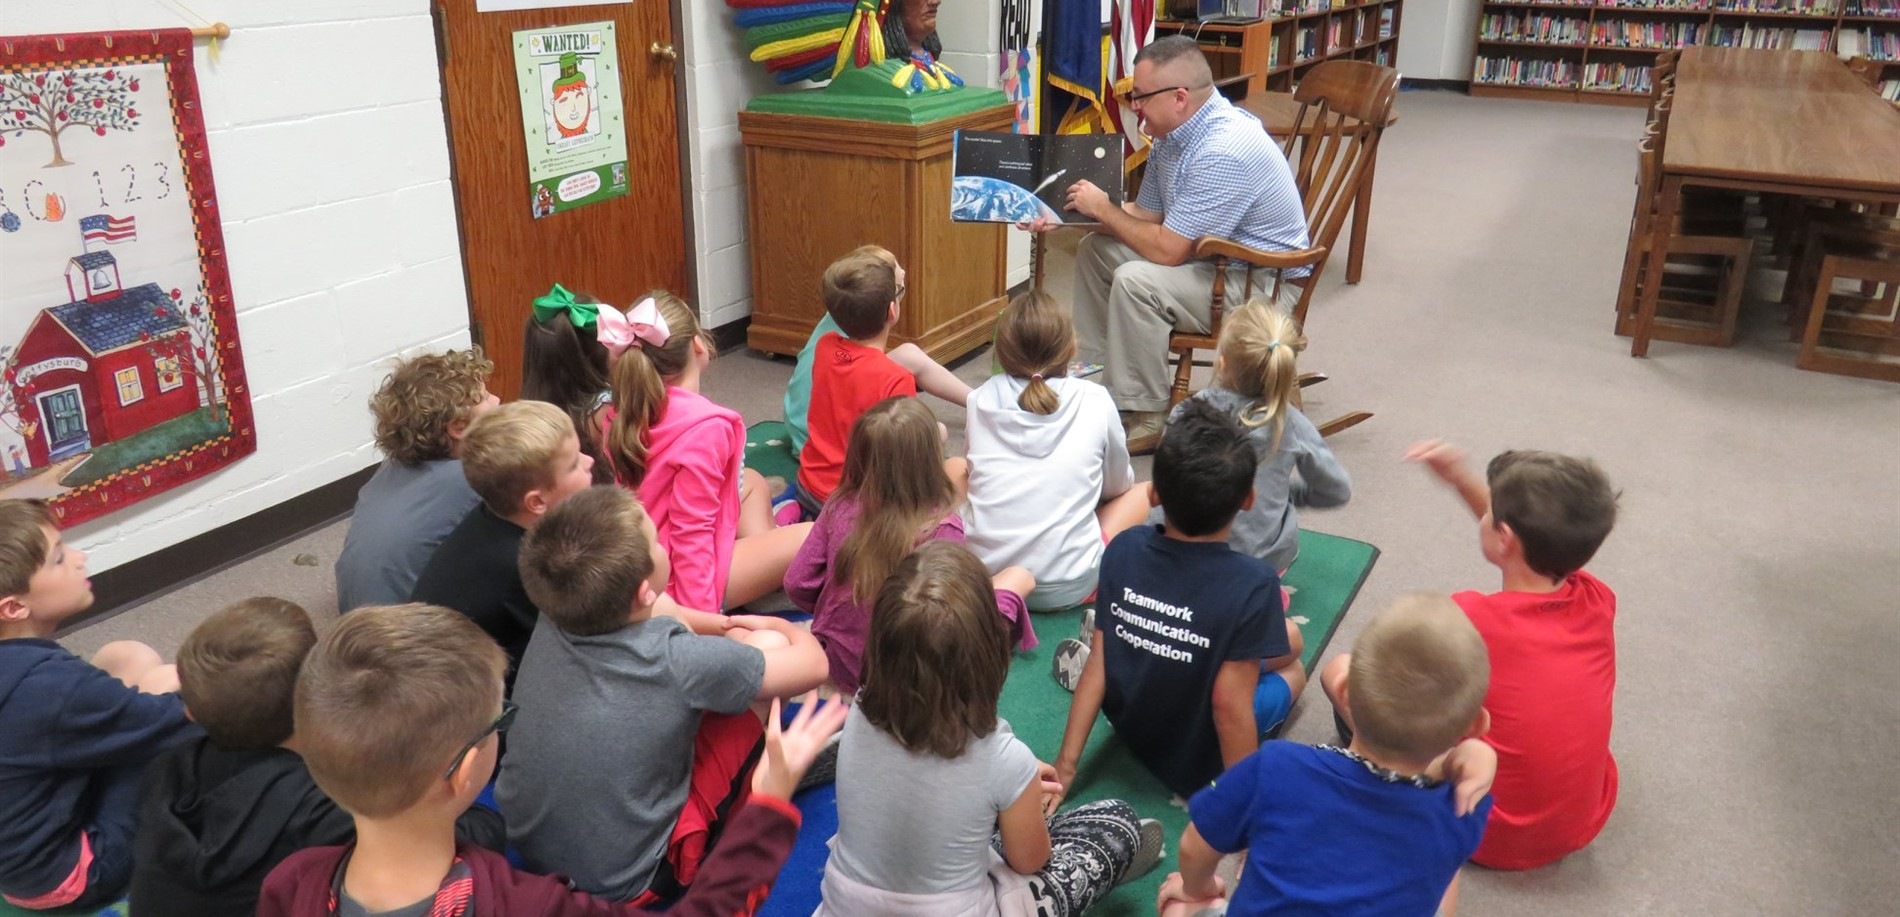 Members of the Hardin County Rotary Club stopped by Lincoln Trail Elementary School to read with students in the library media center.